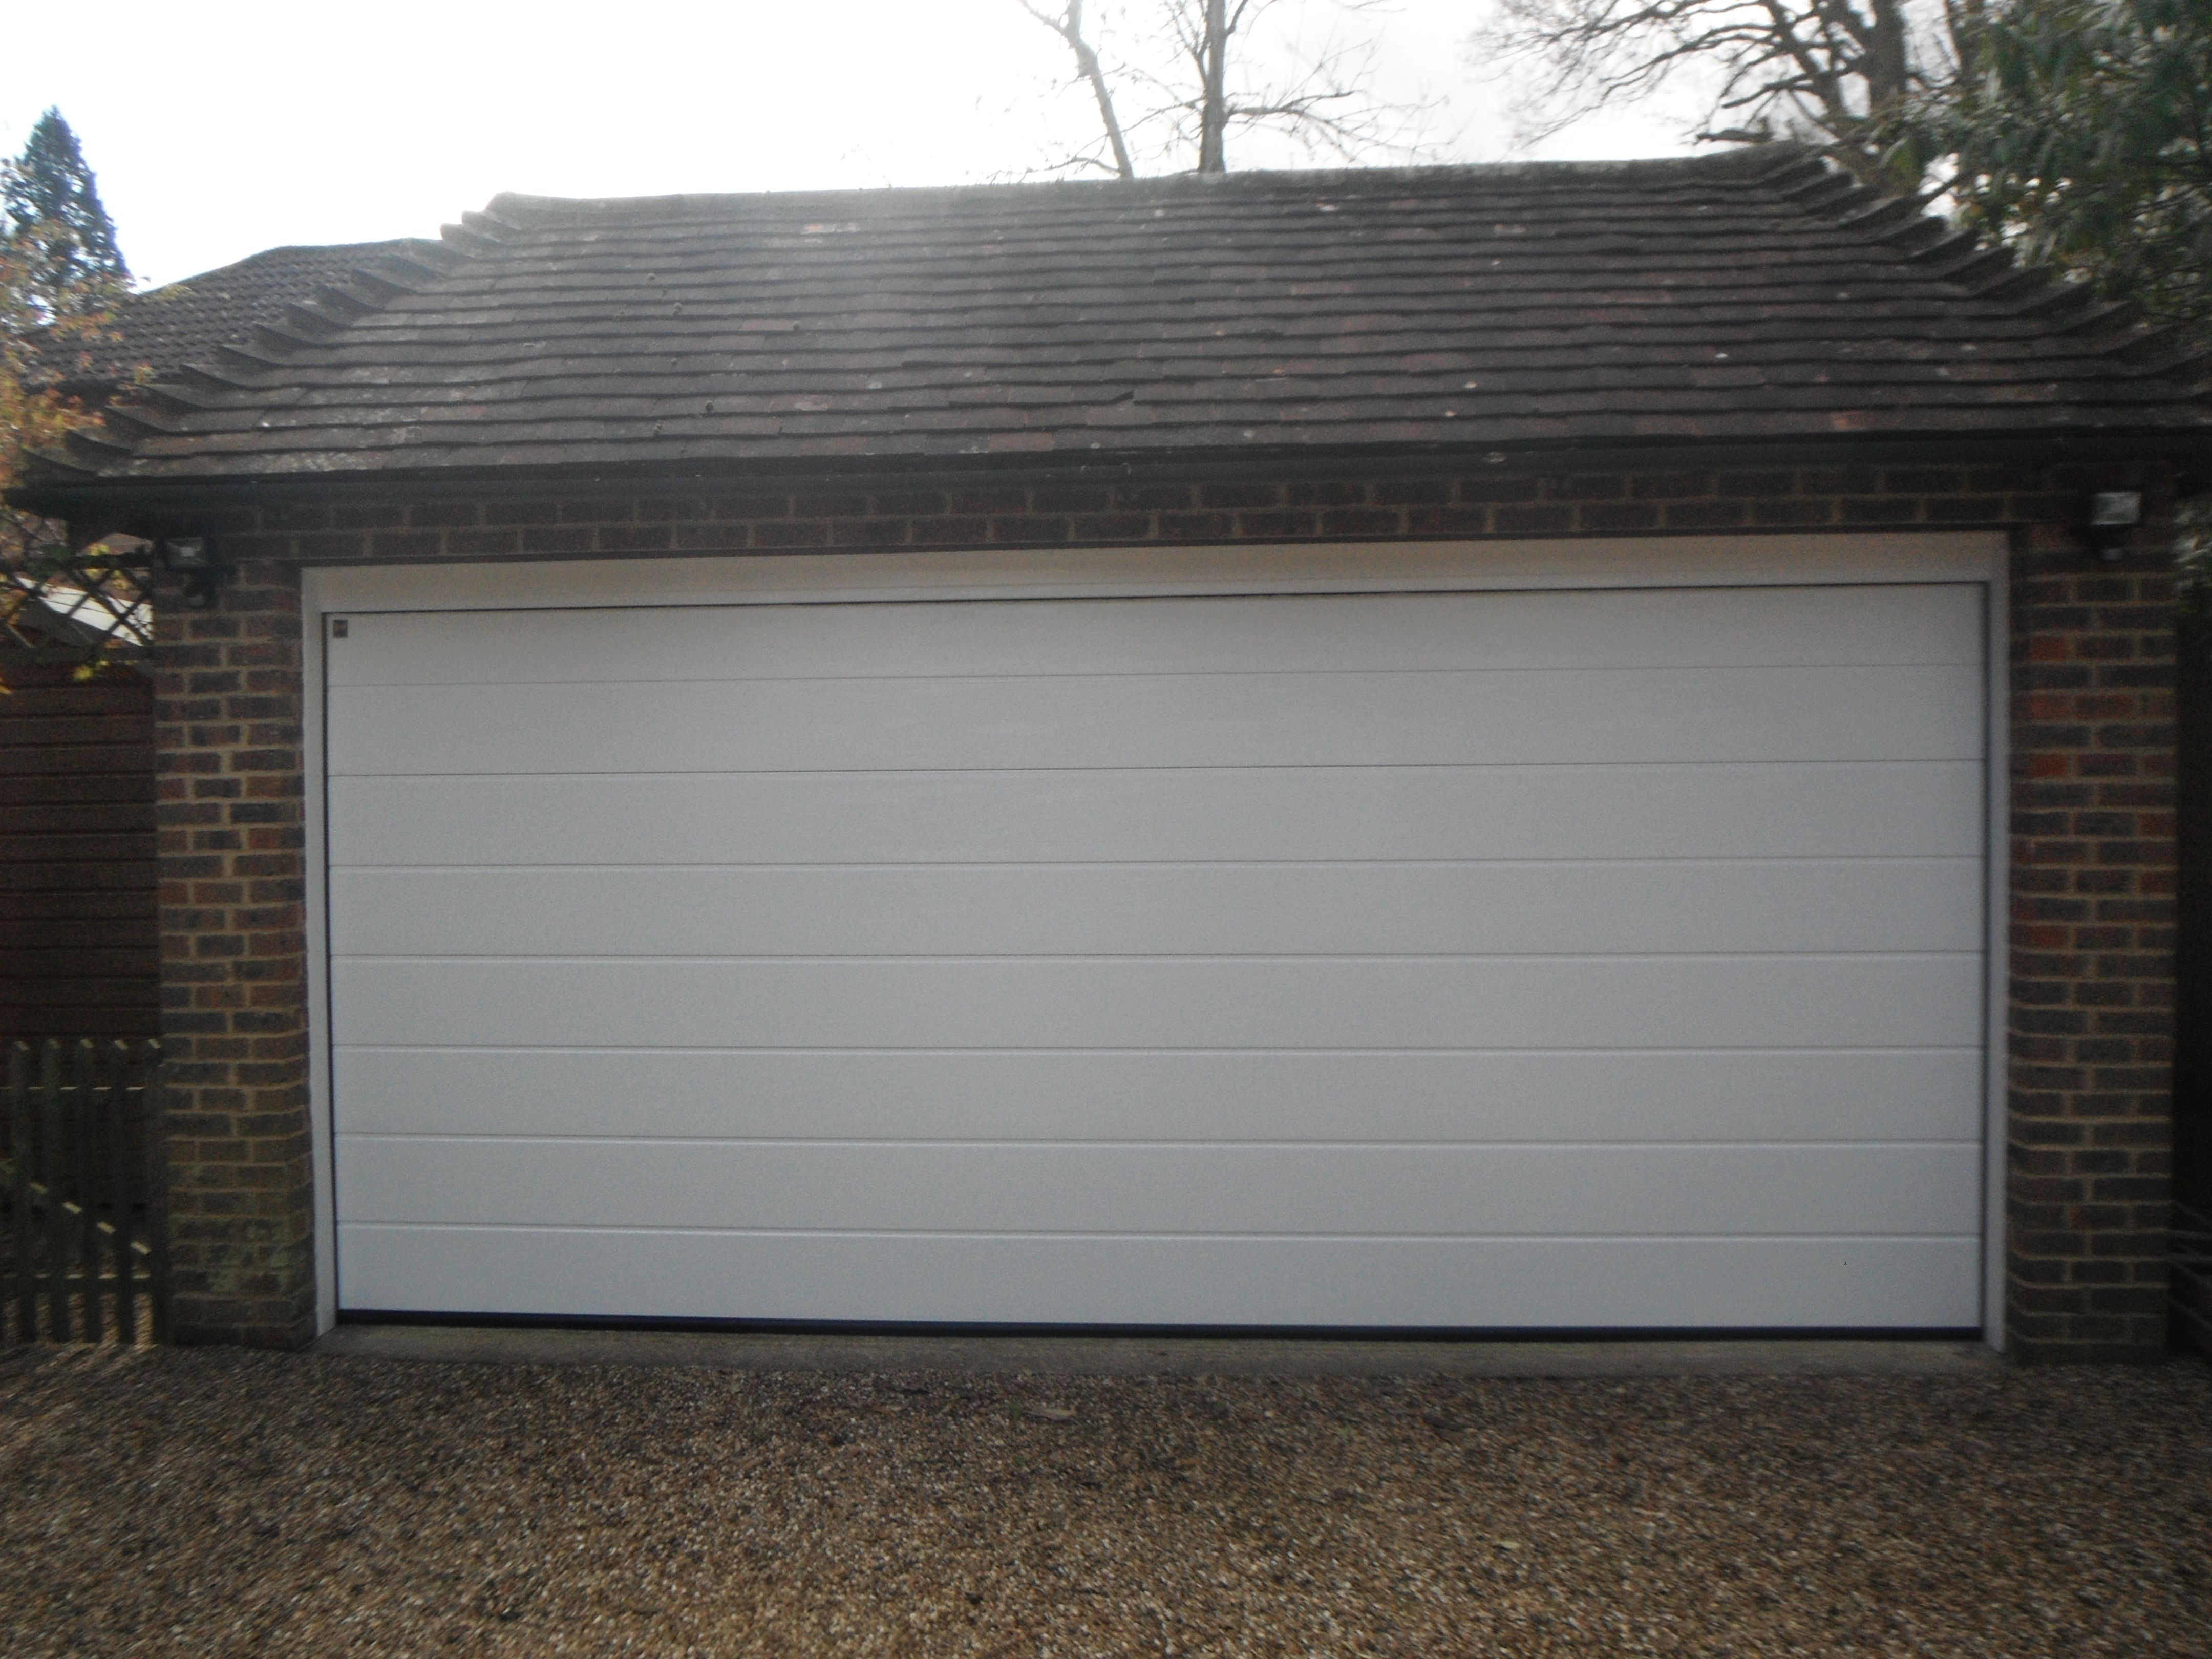 Hormann White M Ribbed Woodgrain Sectional Garage Door